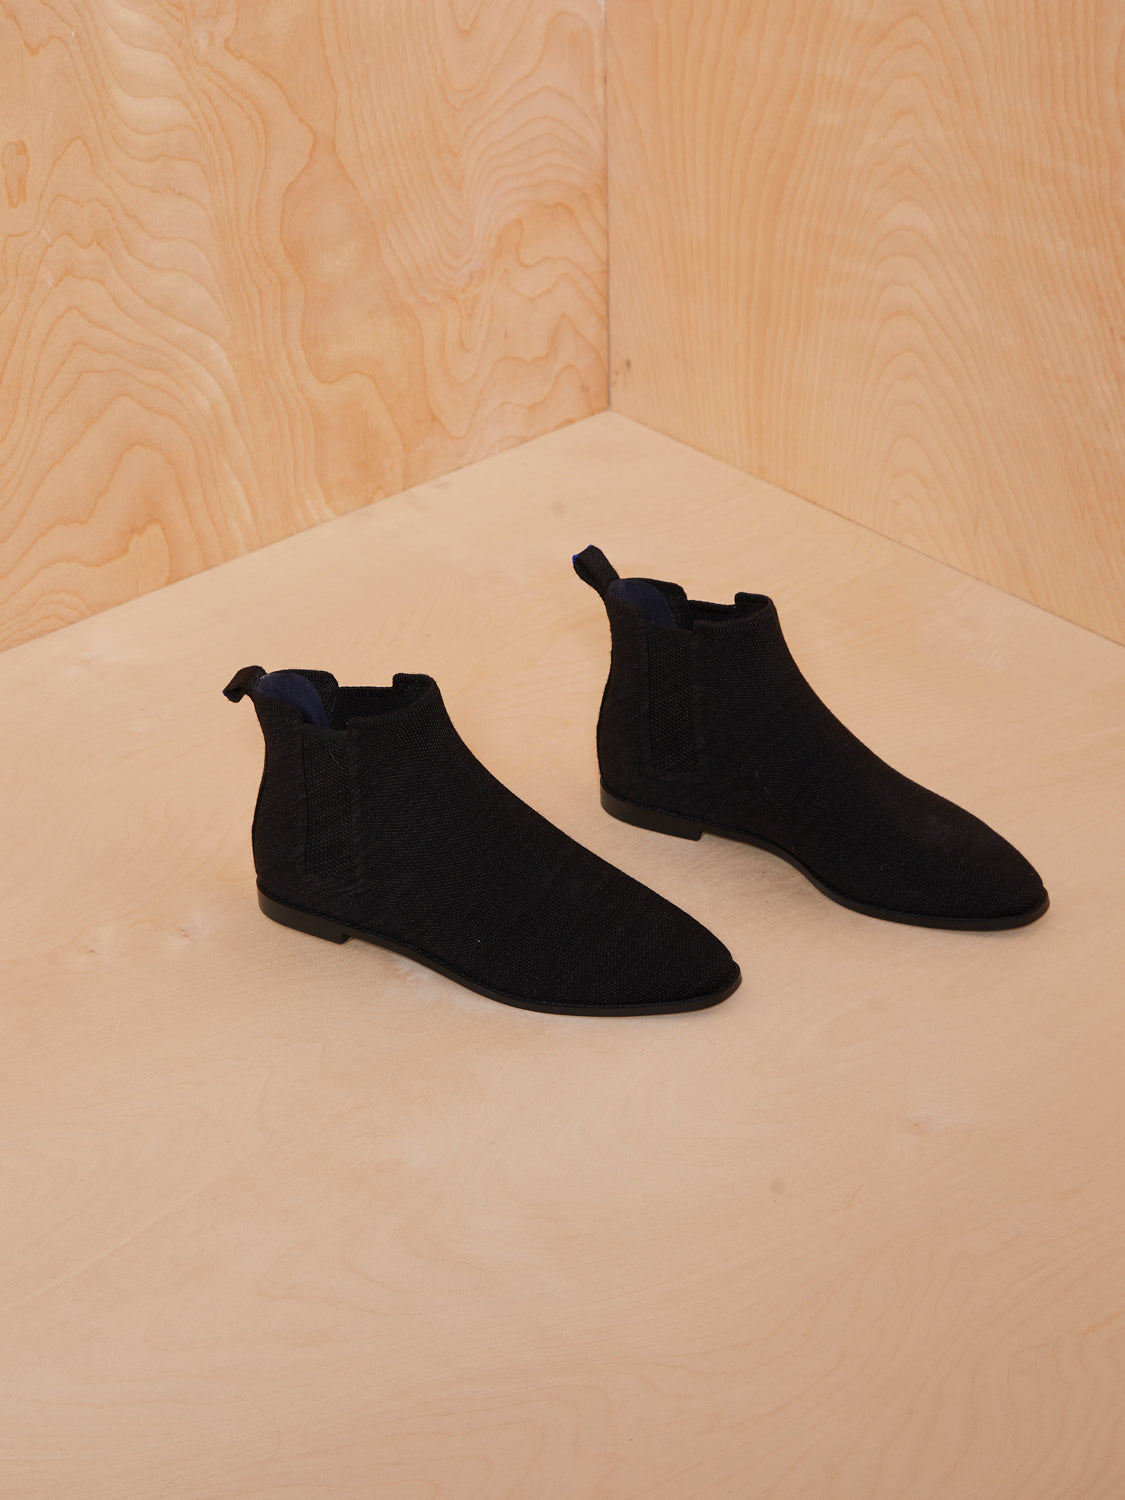 Rothy's Black Knit Booties